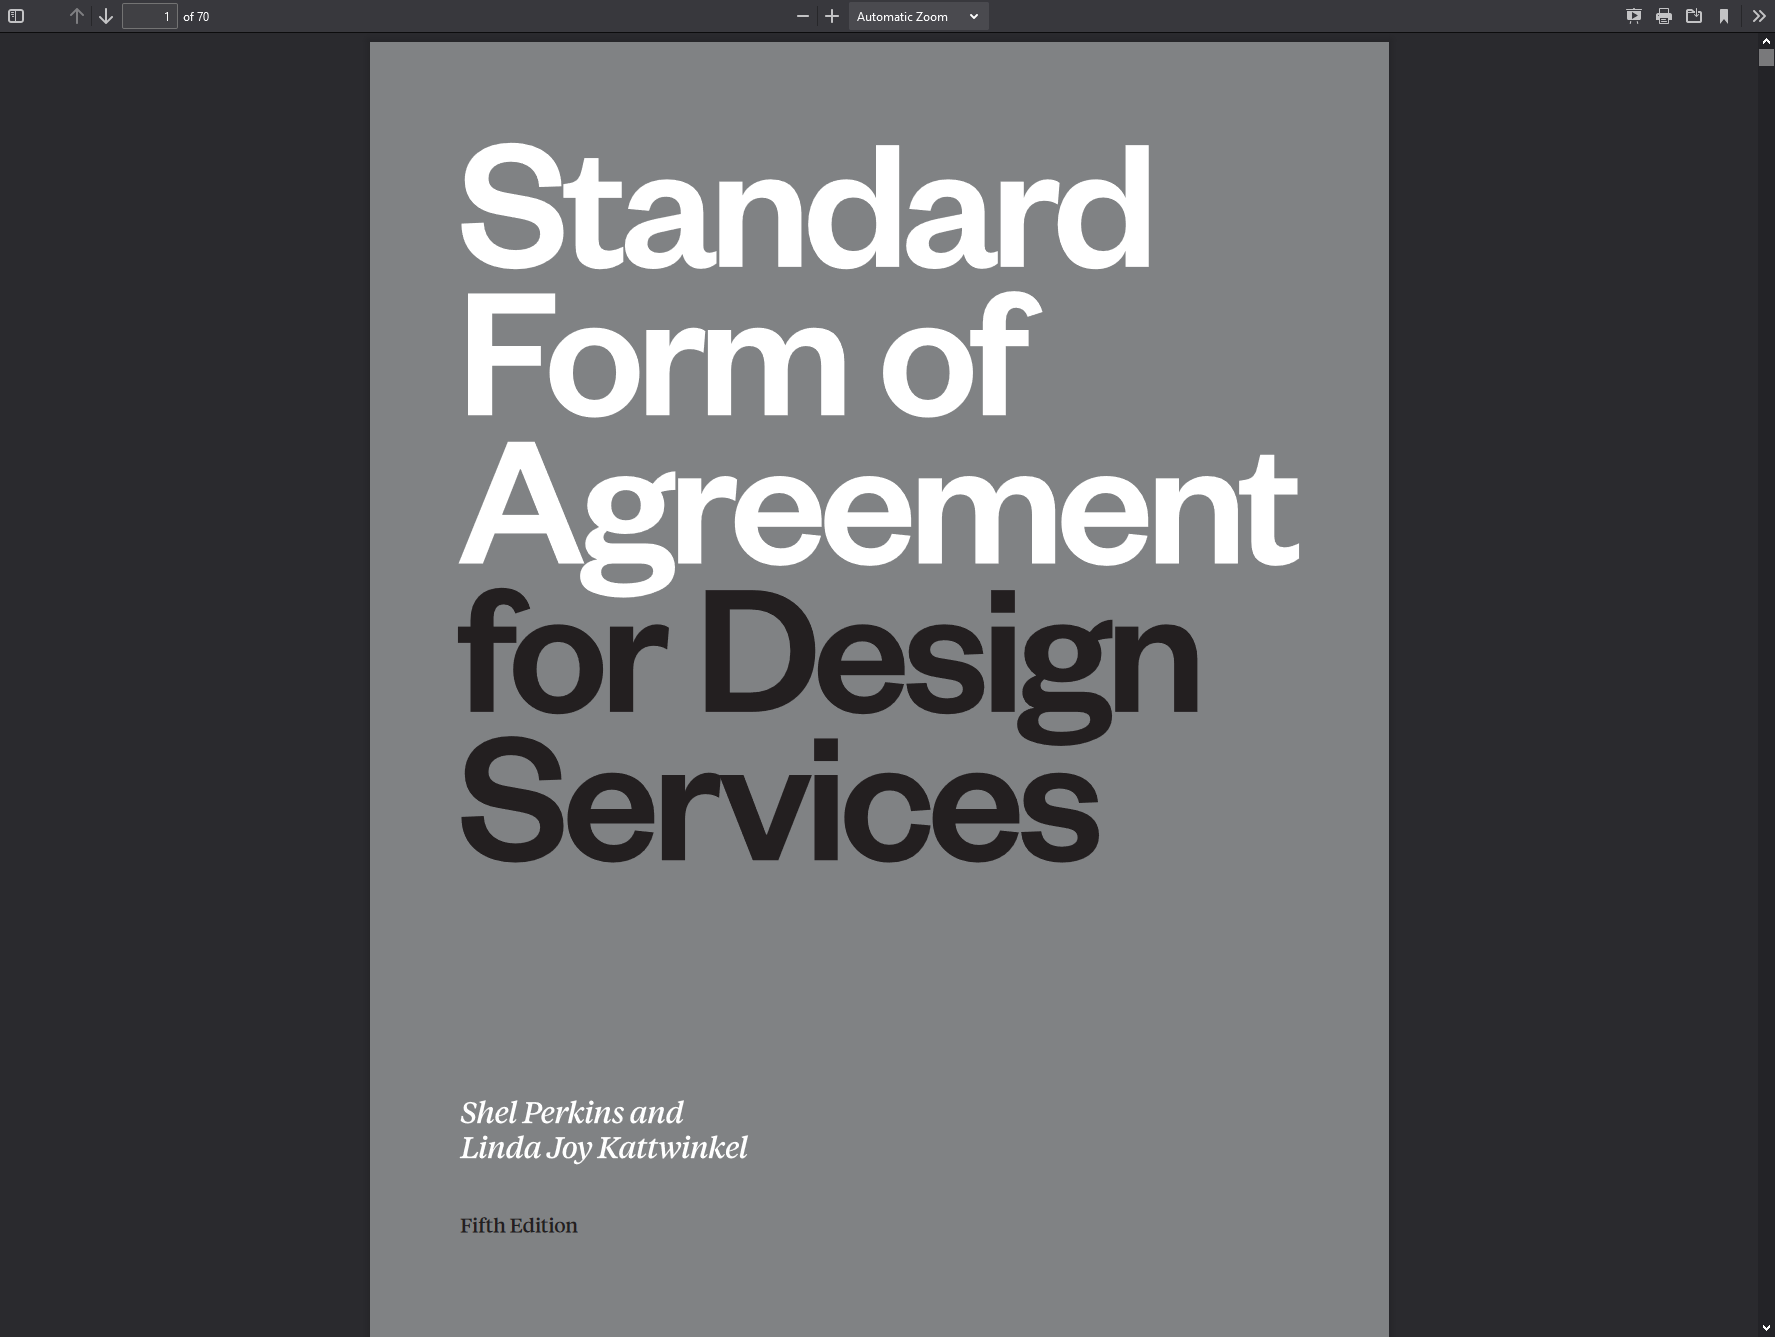 Standard Form of Agreement Template for Design Services by AIGA